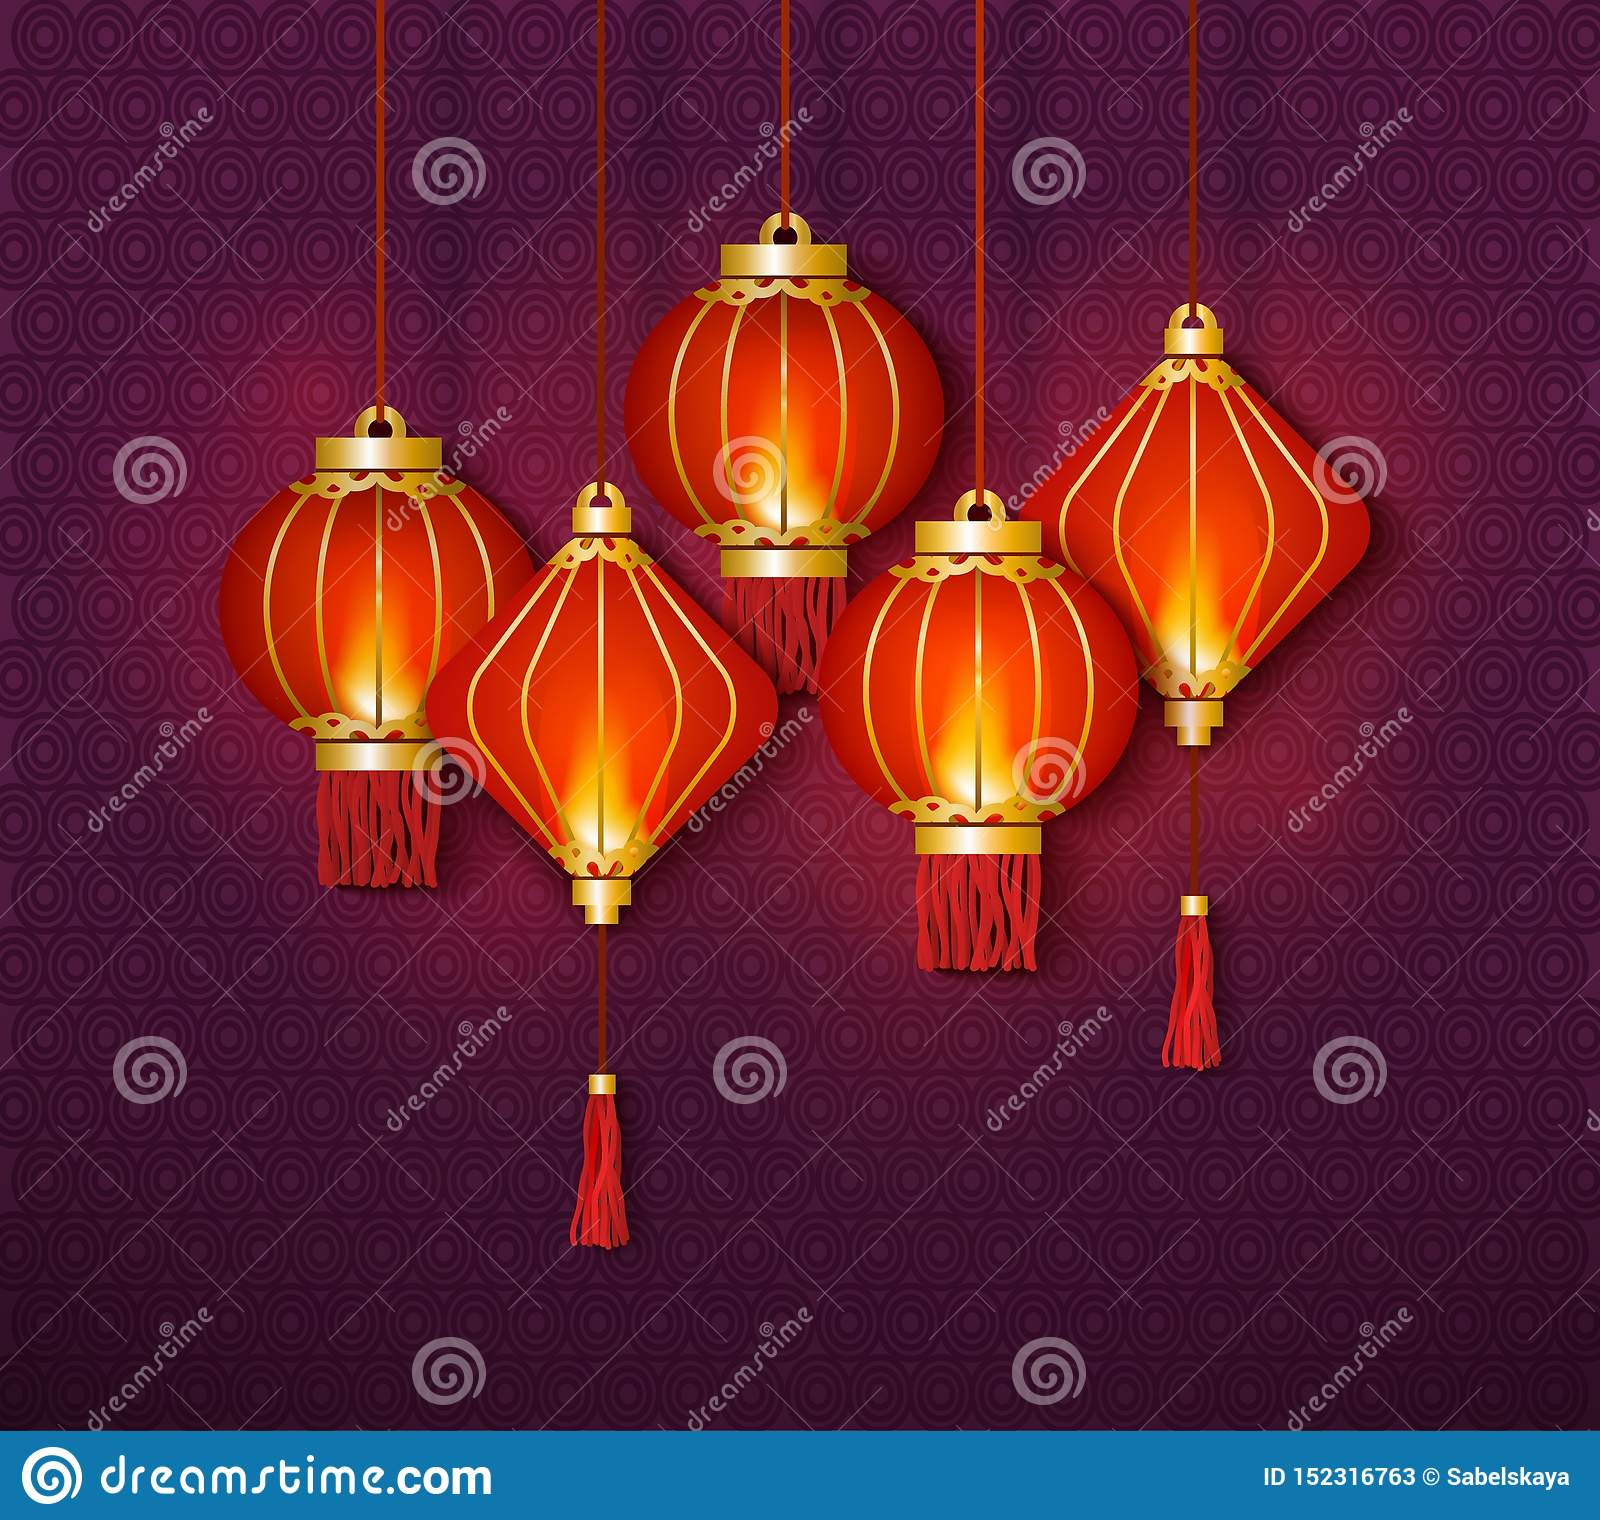 Background And Wallpaper With Chinese Lantern And Lamps Stock Vector Illustration Of Graphic Light 152316763